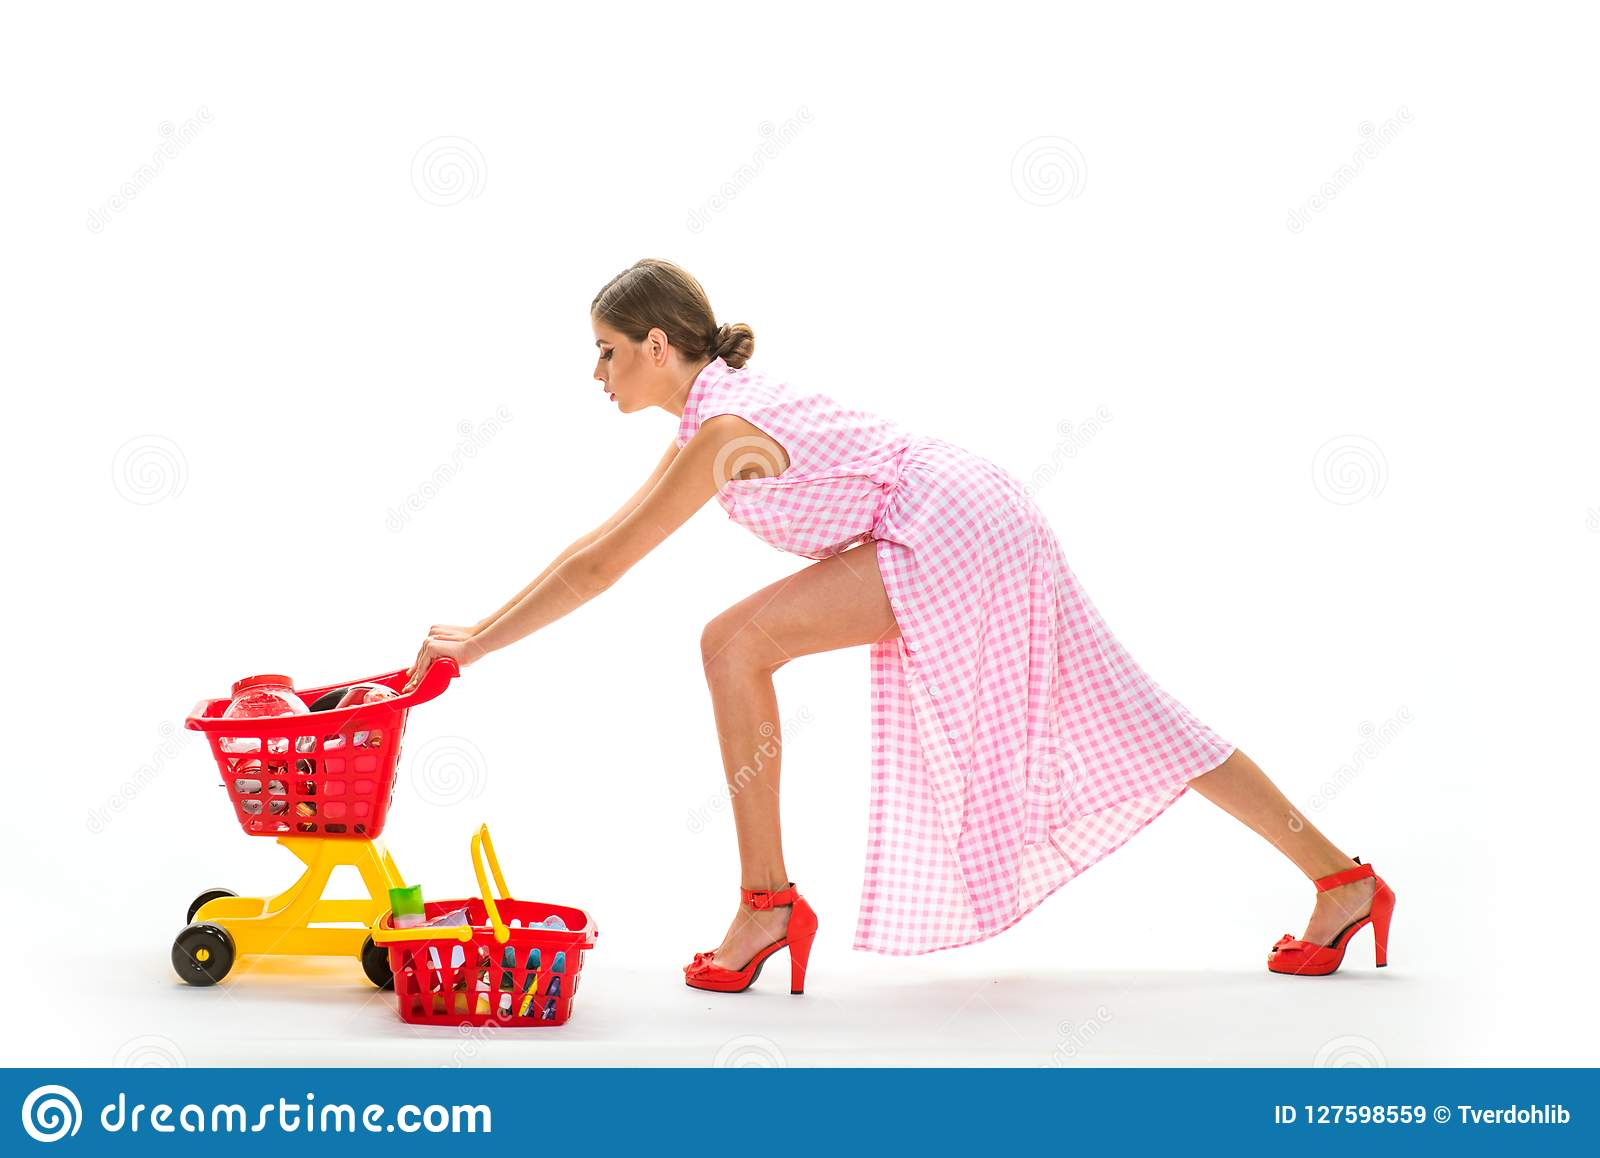 Shopping online is so easy. retro woman hurrying to buy products. under control. daily tasks.big sale in shopping mall